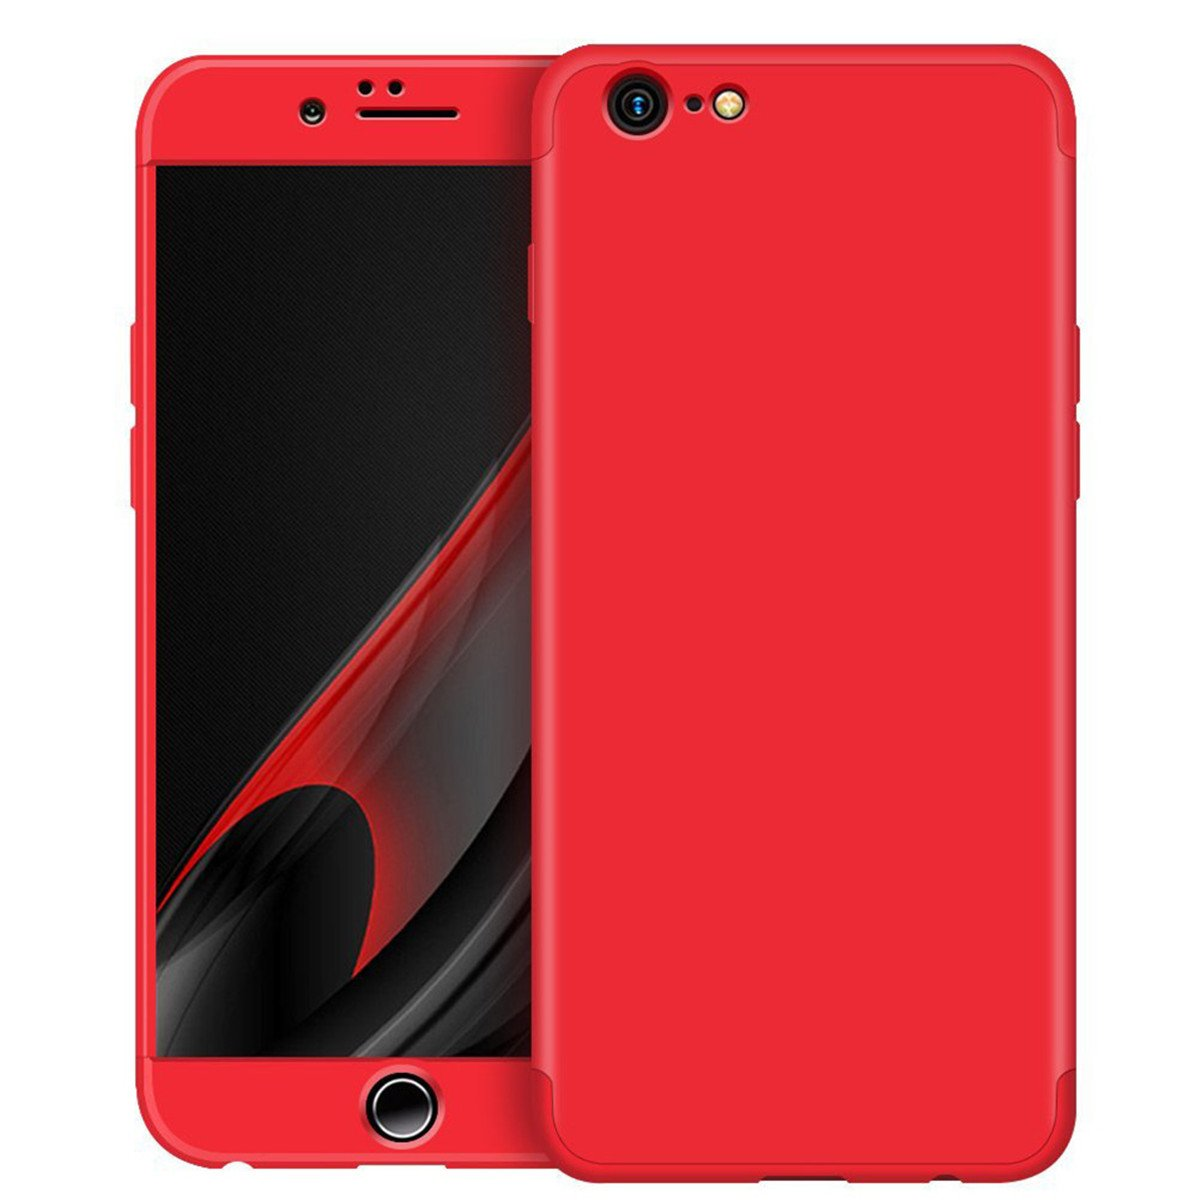 Adamark iPhone 6/6S Plus 5.5'' Case 360 Degree Protection 3 in 1 Slim Cover Shockproof Full Body Coverage Protective Case For iPhone 6/6S Plus